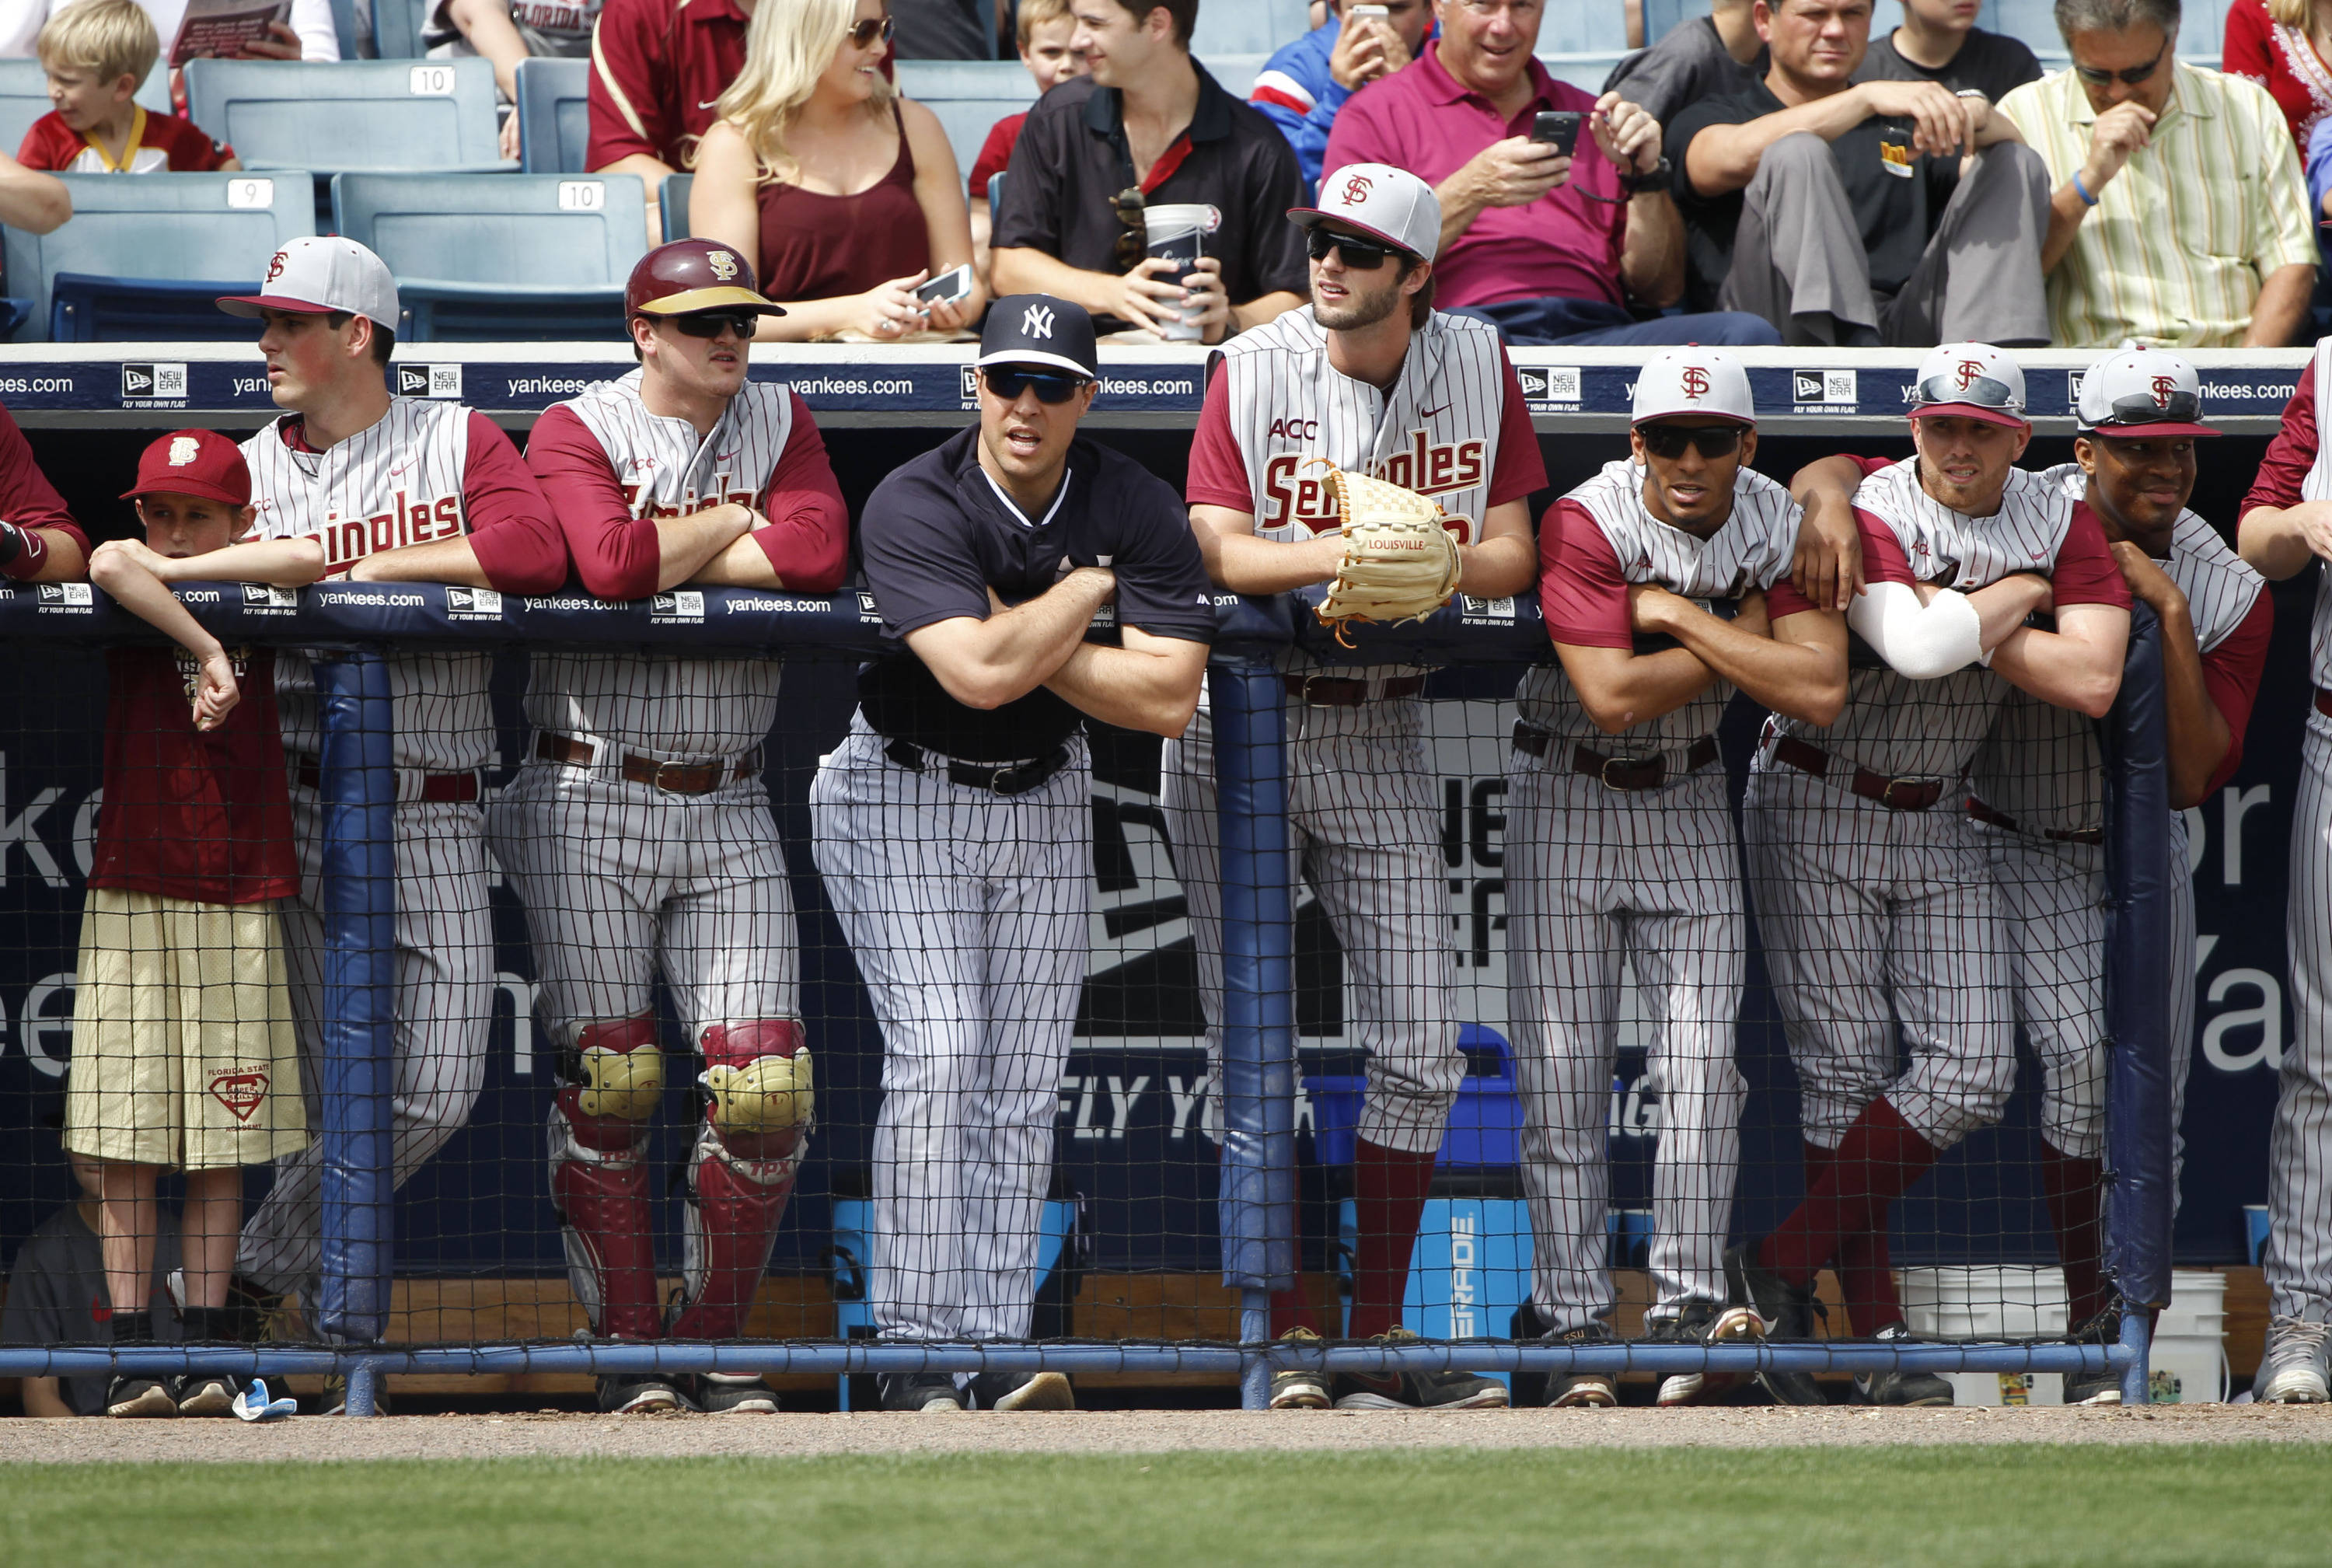 Feb 25, 2014; Tampa, FL, USA; New York Yankees first baseman Mark Teixeira (25) stands in the dugout with the  Florida State Seminoles players at George M. Steinbrenner Field. Mandatory Credit: Kim Klement-USA TODAY Sports